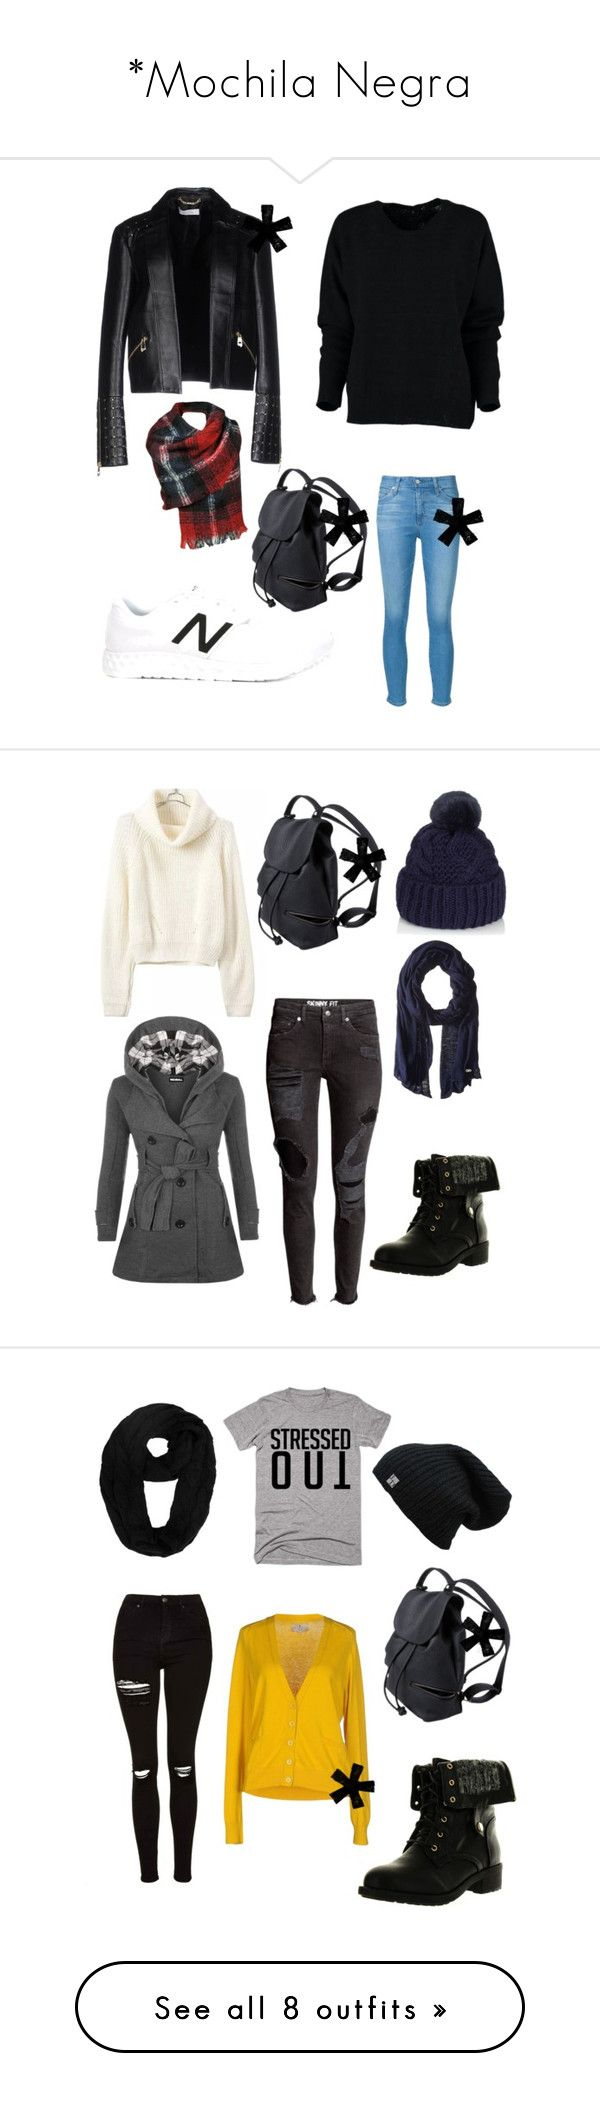 """""""*Mochila Negra"""" by camiorazi on Polyvore featuring bags, backpacks, knapsack bags, rucksack bag, backpacks bags, day pack backpack, moda, New Balance, AG Adriano Goldschmied y Versace"""